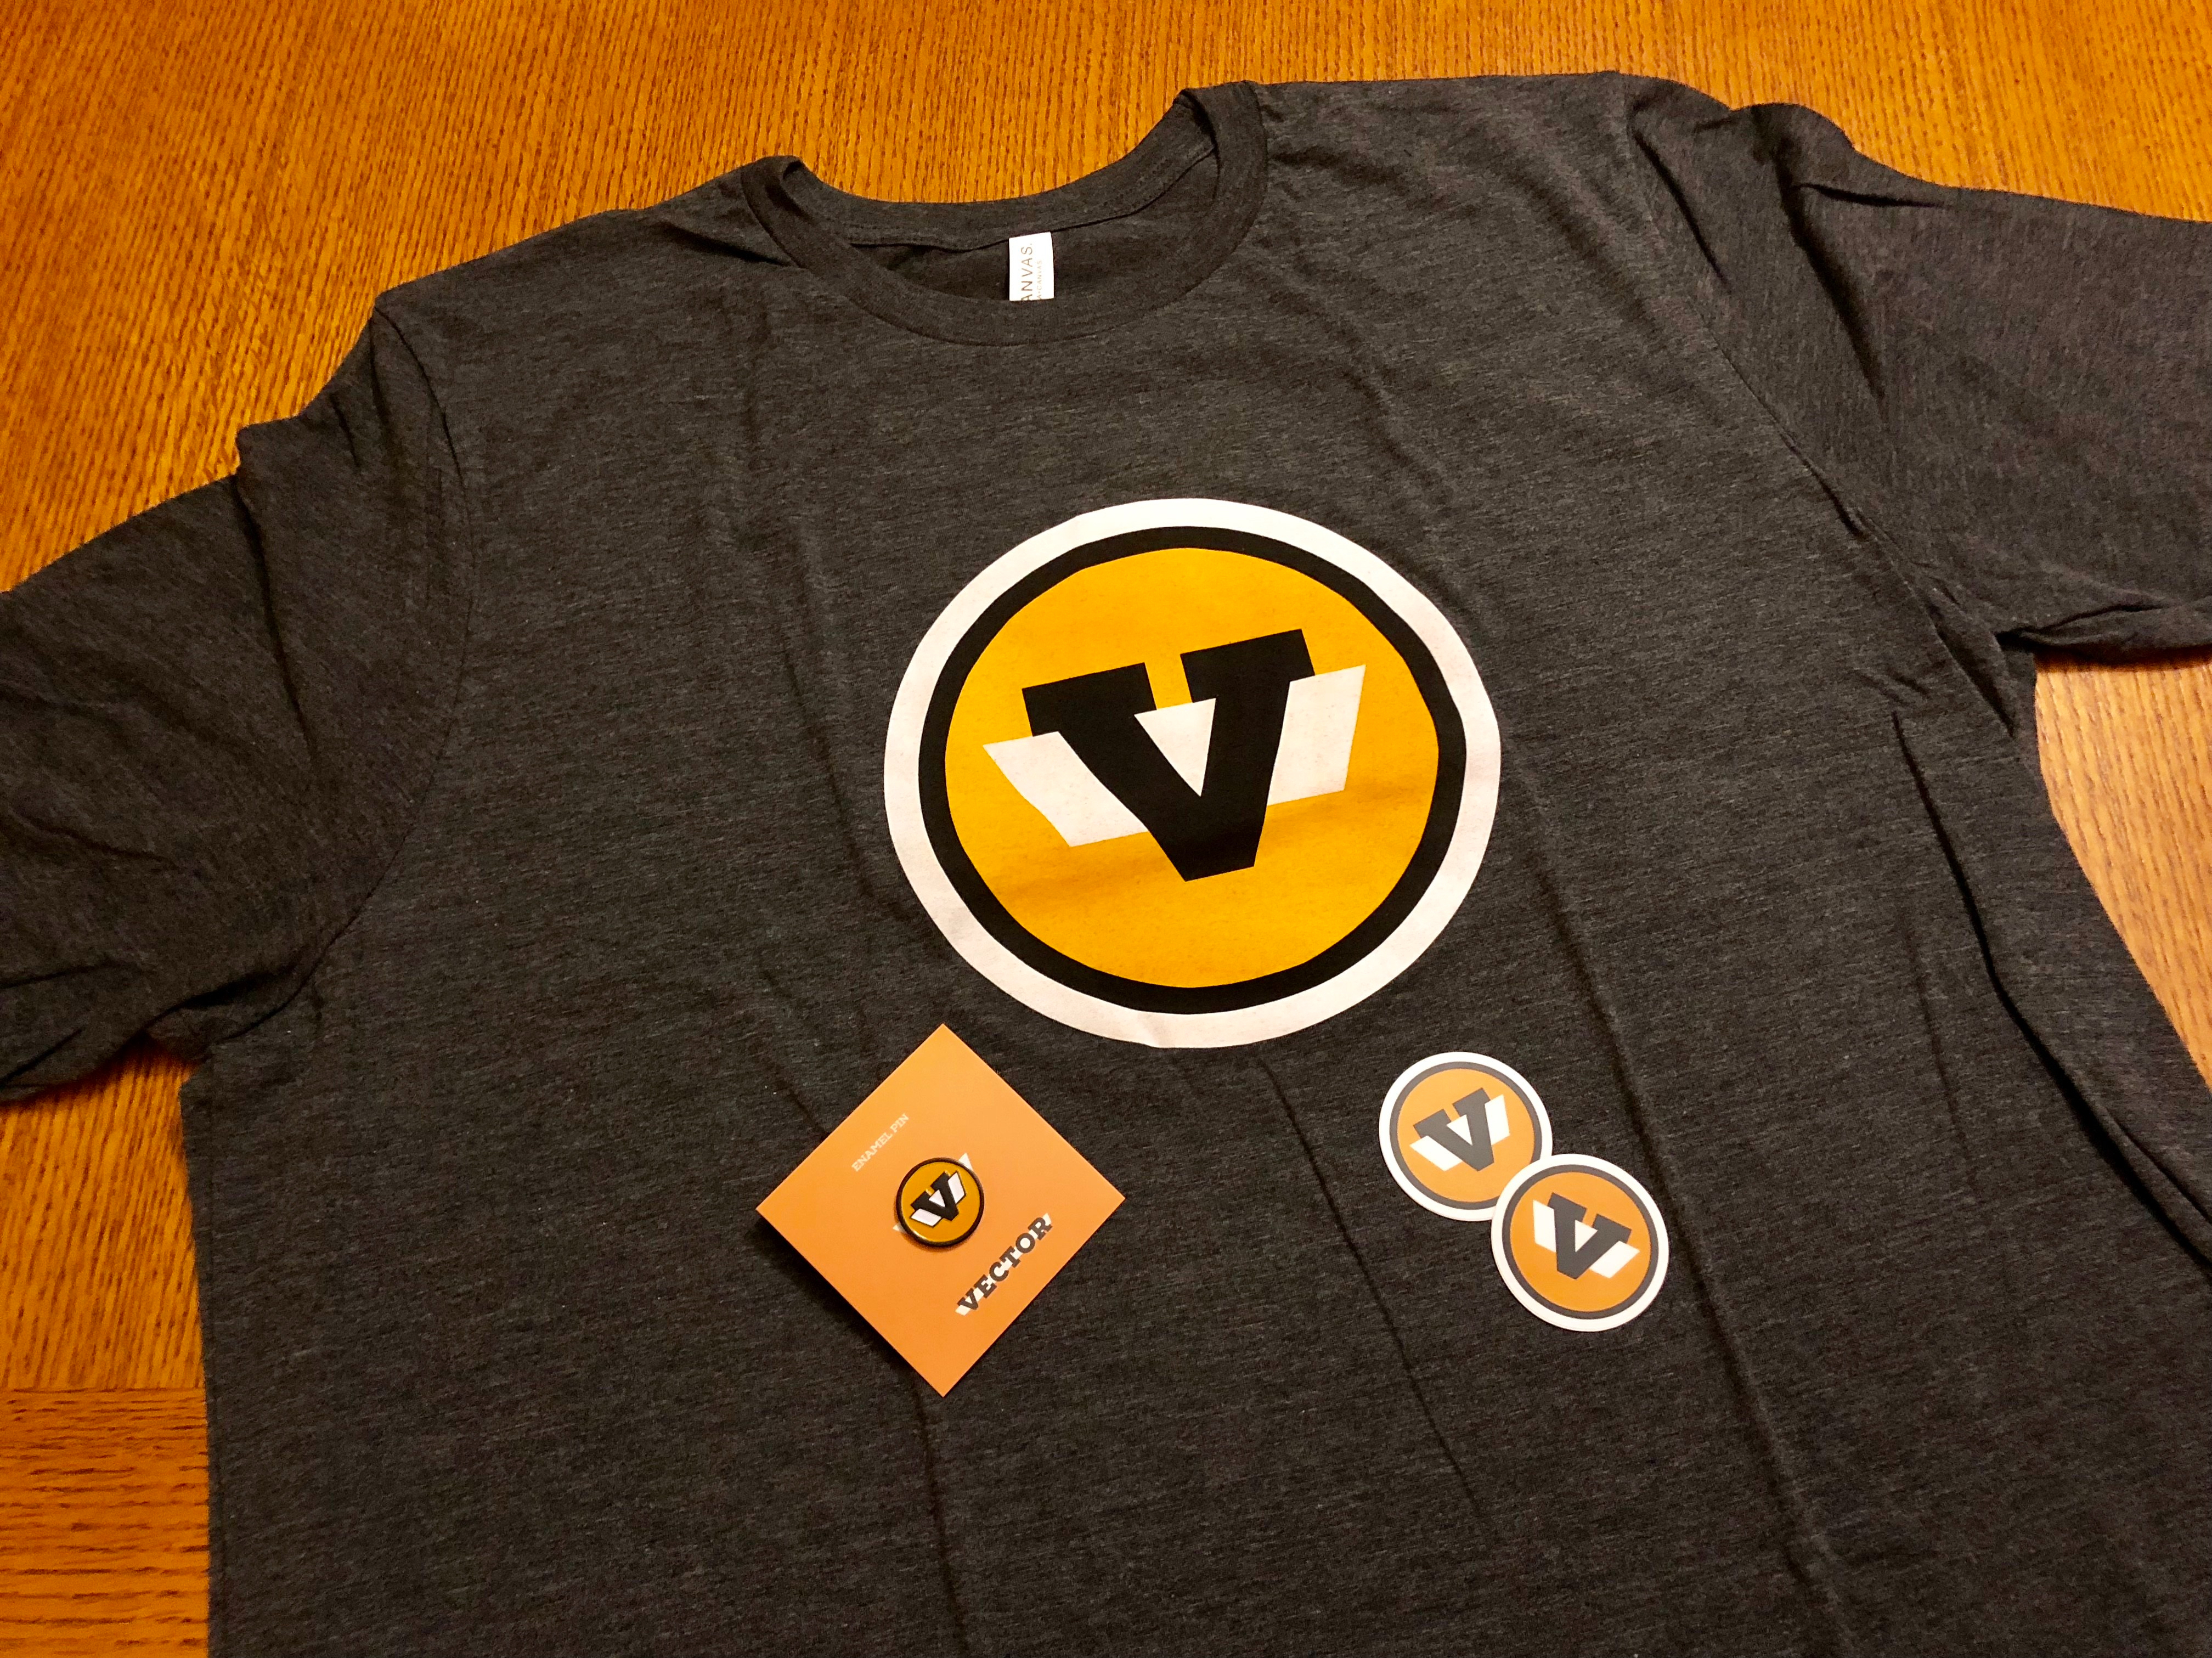 T-Shirt, pin, and stickers with Vector logo